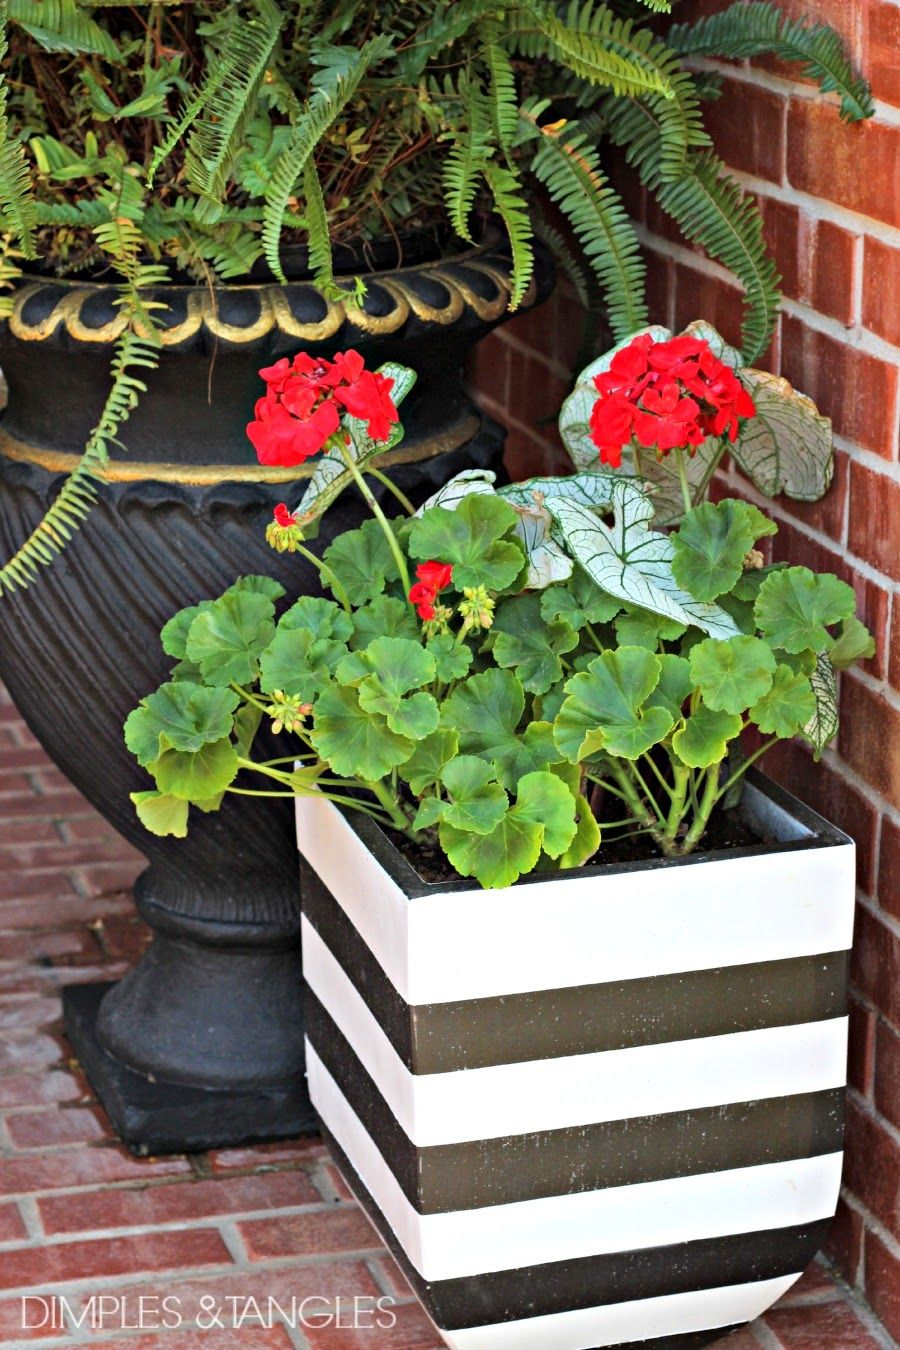 Diy Black And White Striped Pots White Planters White Plants